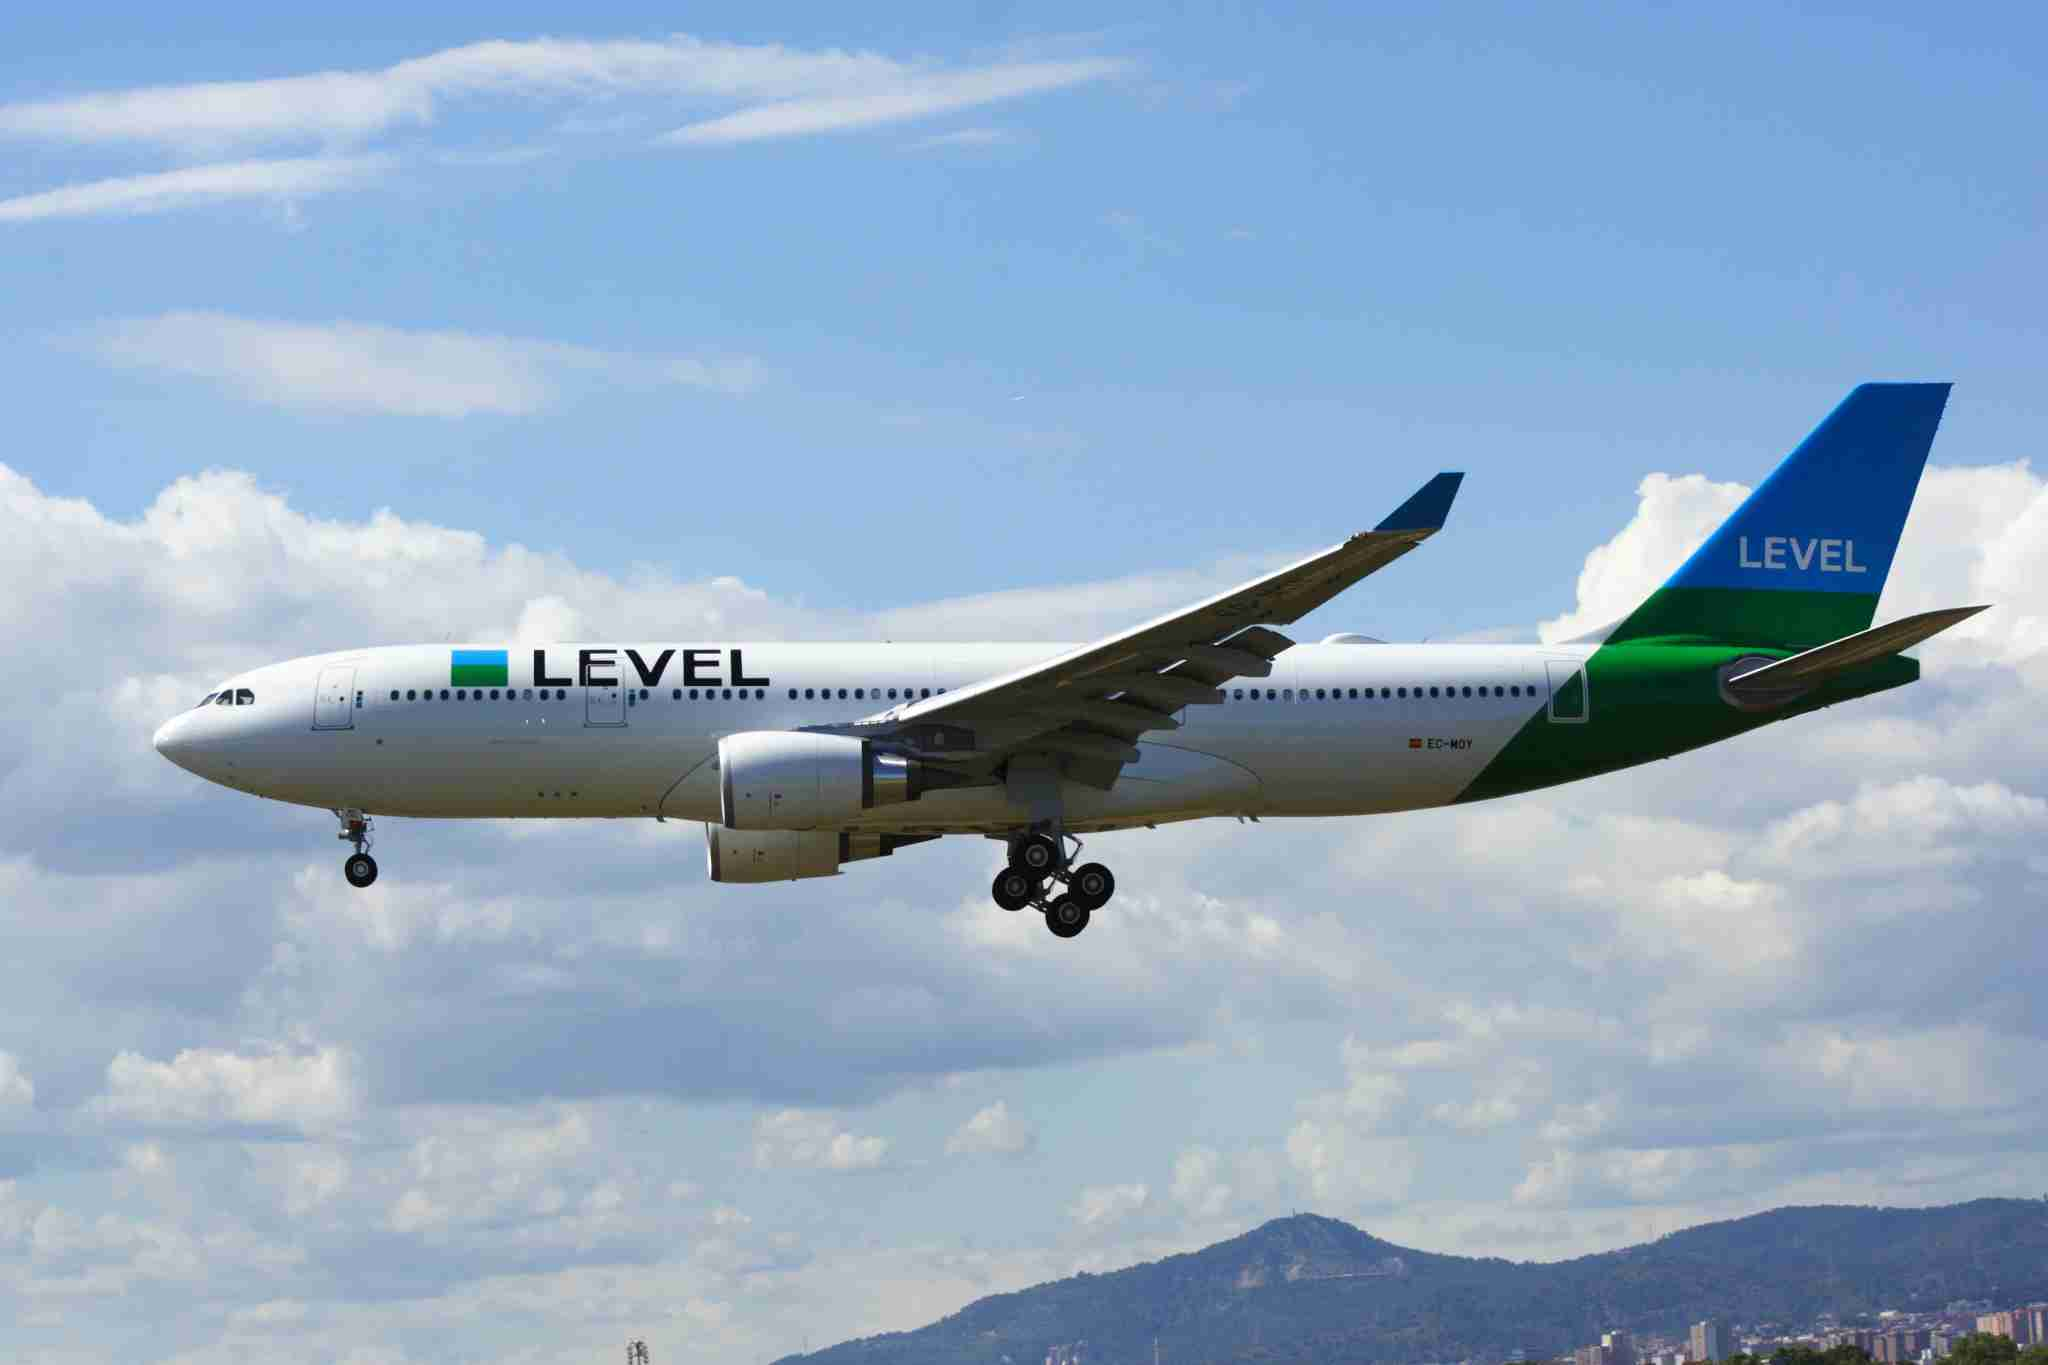 A LEVEL Airbus A330 (Photo by Daniel Luis Gómez Adenis/Wikimedia Commons)